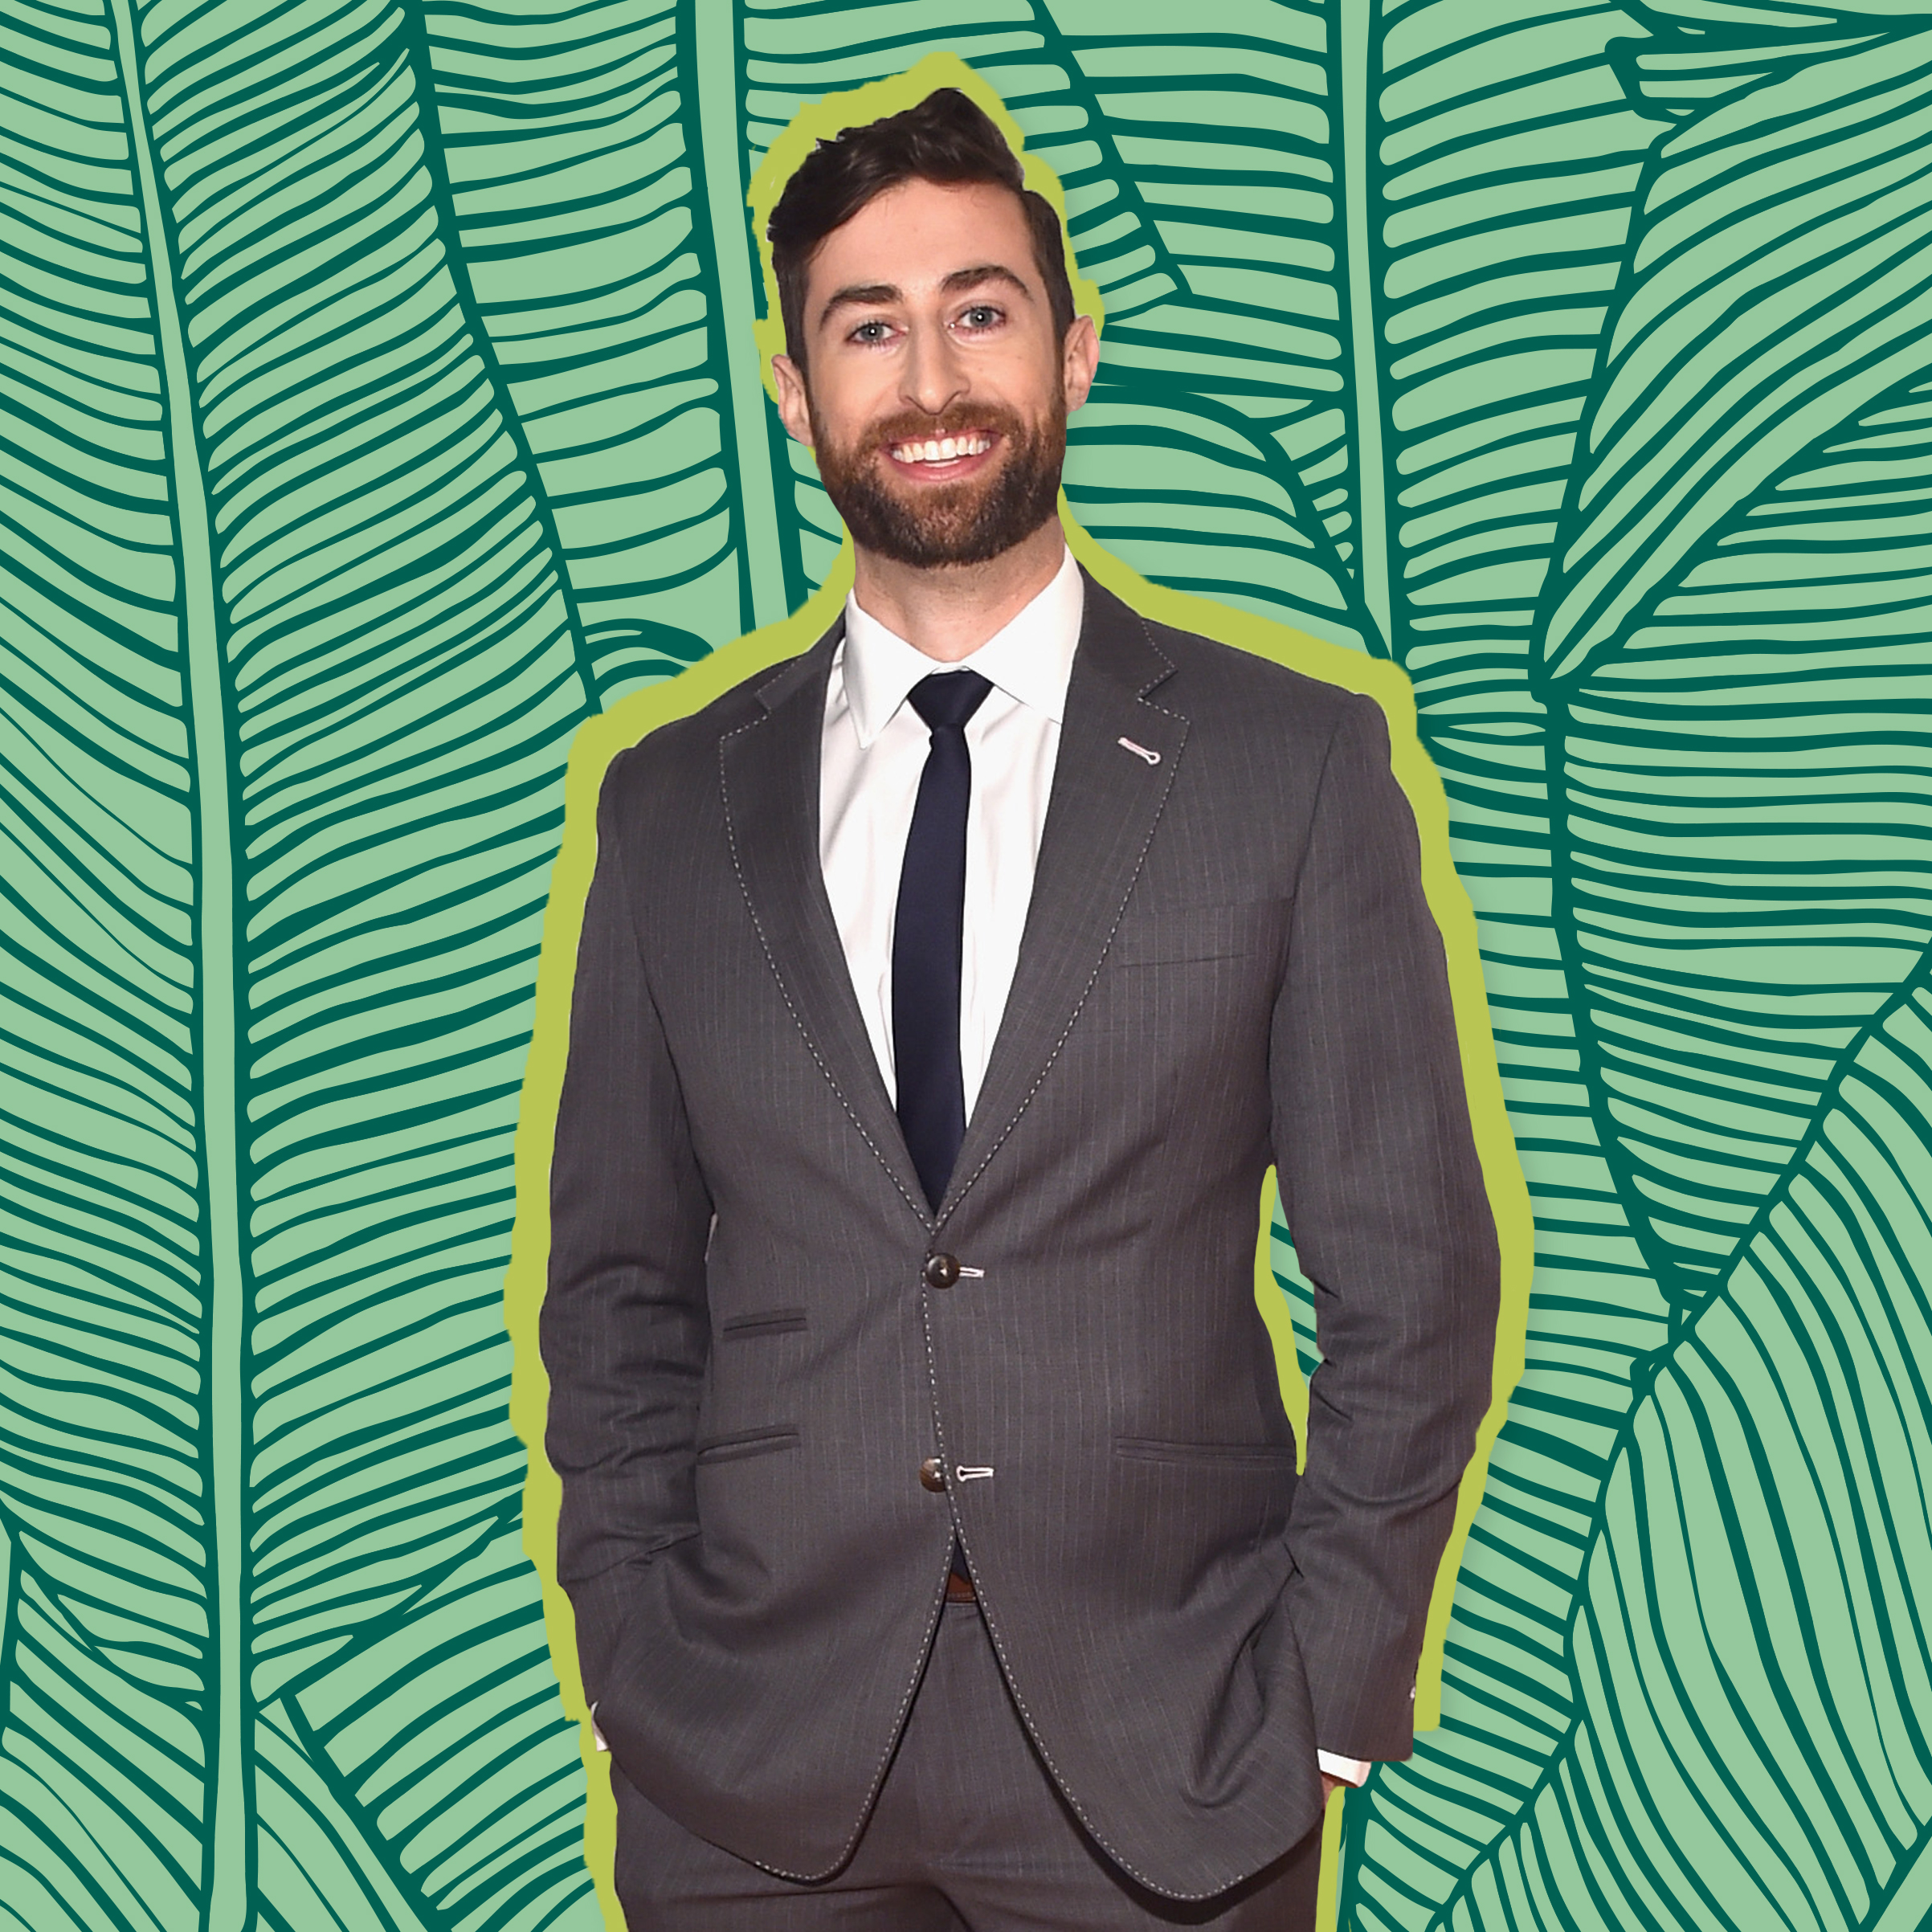 HQ host Scott Rogowsky